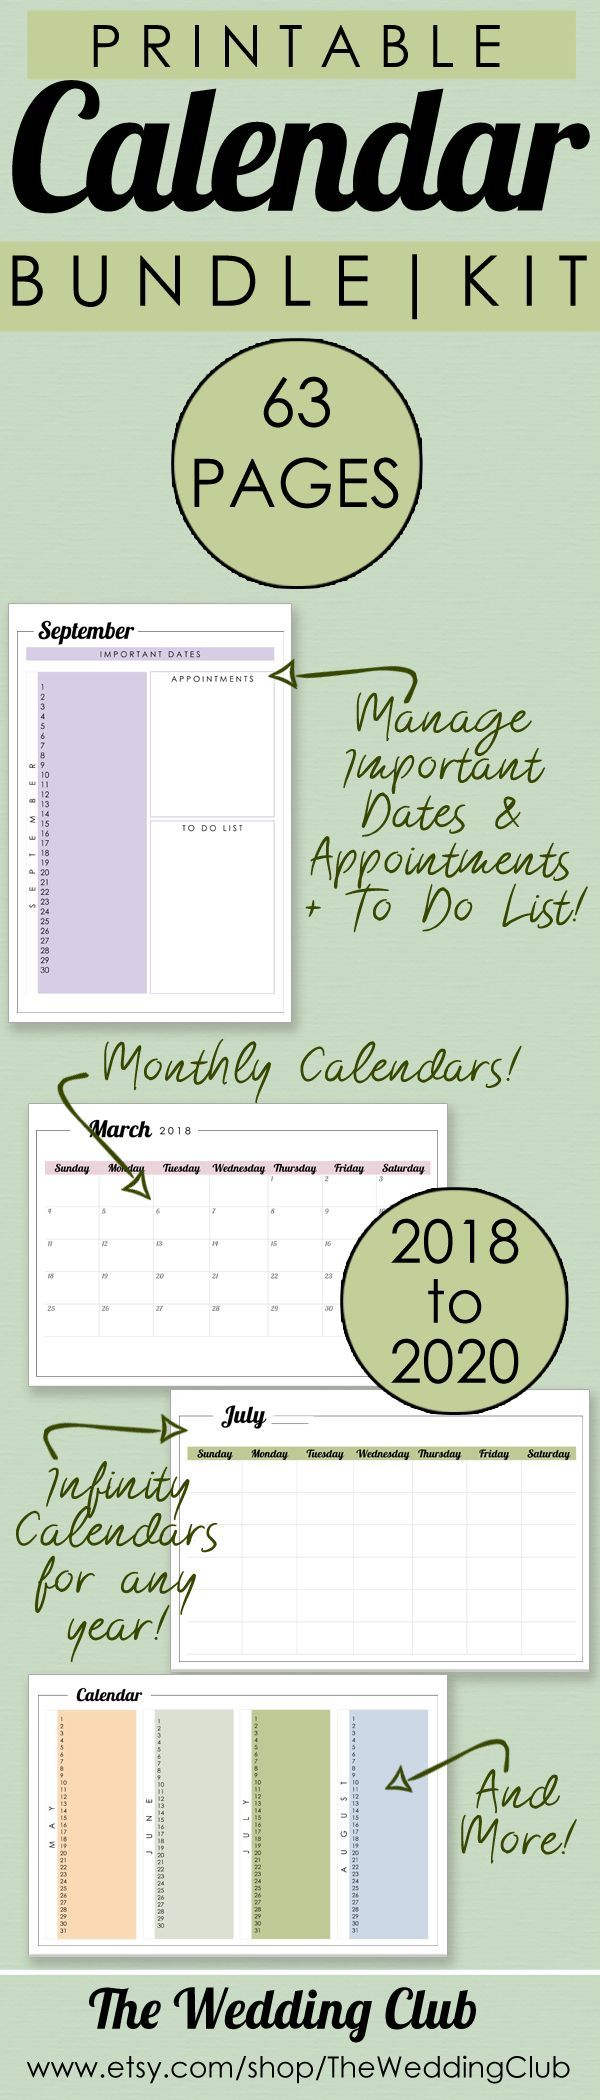 Printable Calendar Bundle Kit - 63 Pages - Plan your year ahead with these fantastic printables! Includes monthly calendars for 2018-2020, infinity calendars for any year, important dates sheets for any month, and a 4-month view calendar. Keywords: Calendar, Printable Planner, 2018, 2019, 2020, yearly planner, monthly planner, printables, calendar printables. #etsy #planner #calendar #2018 #2019 #2020 #planyourfuture